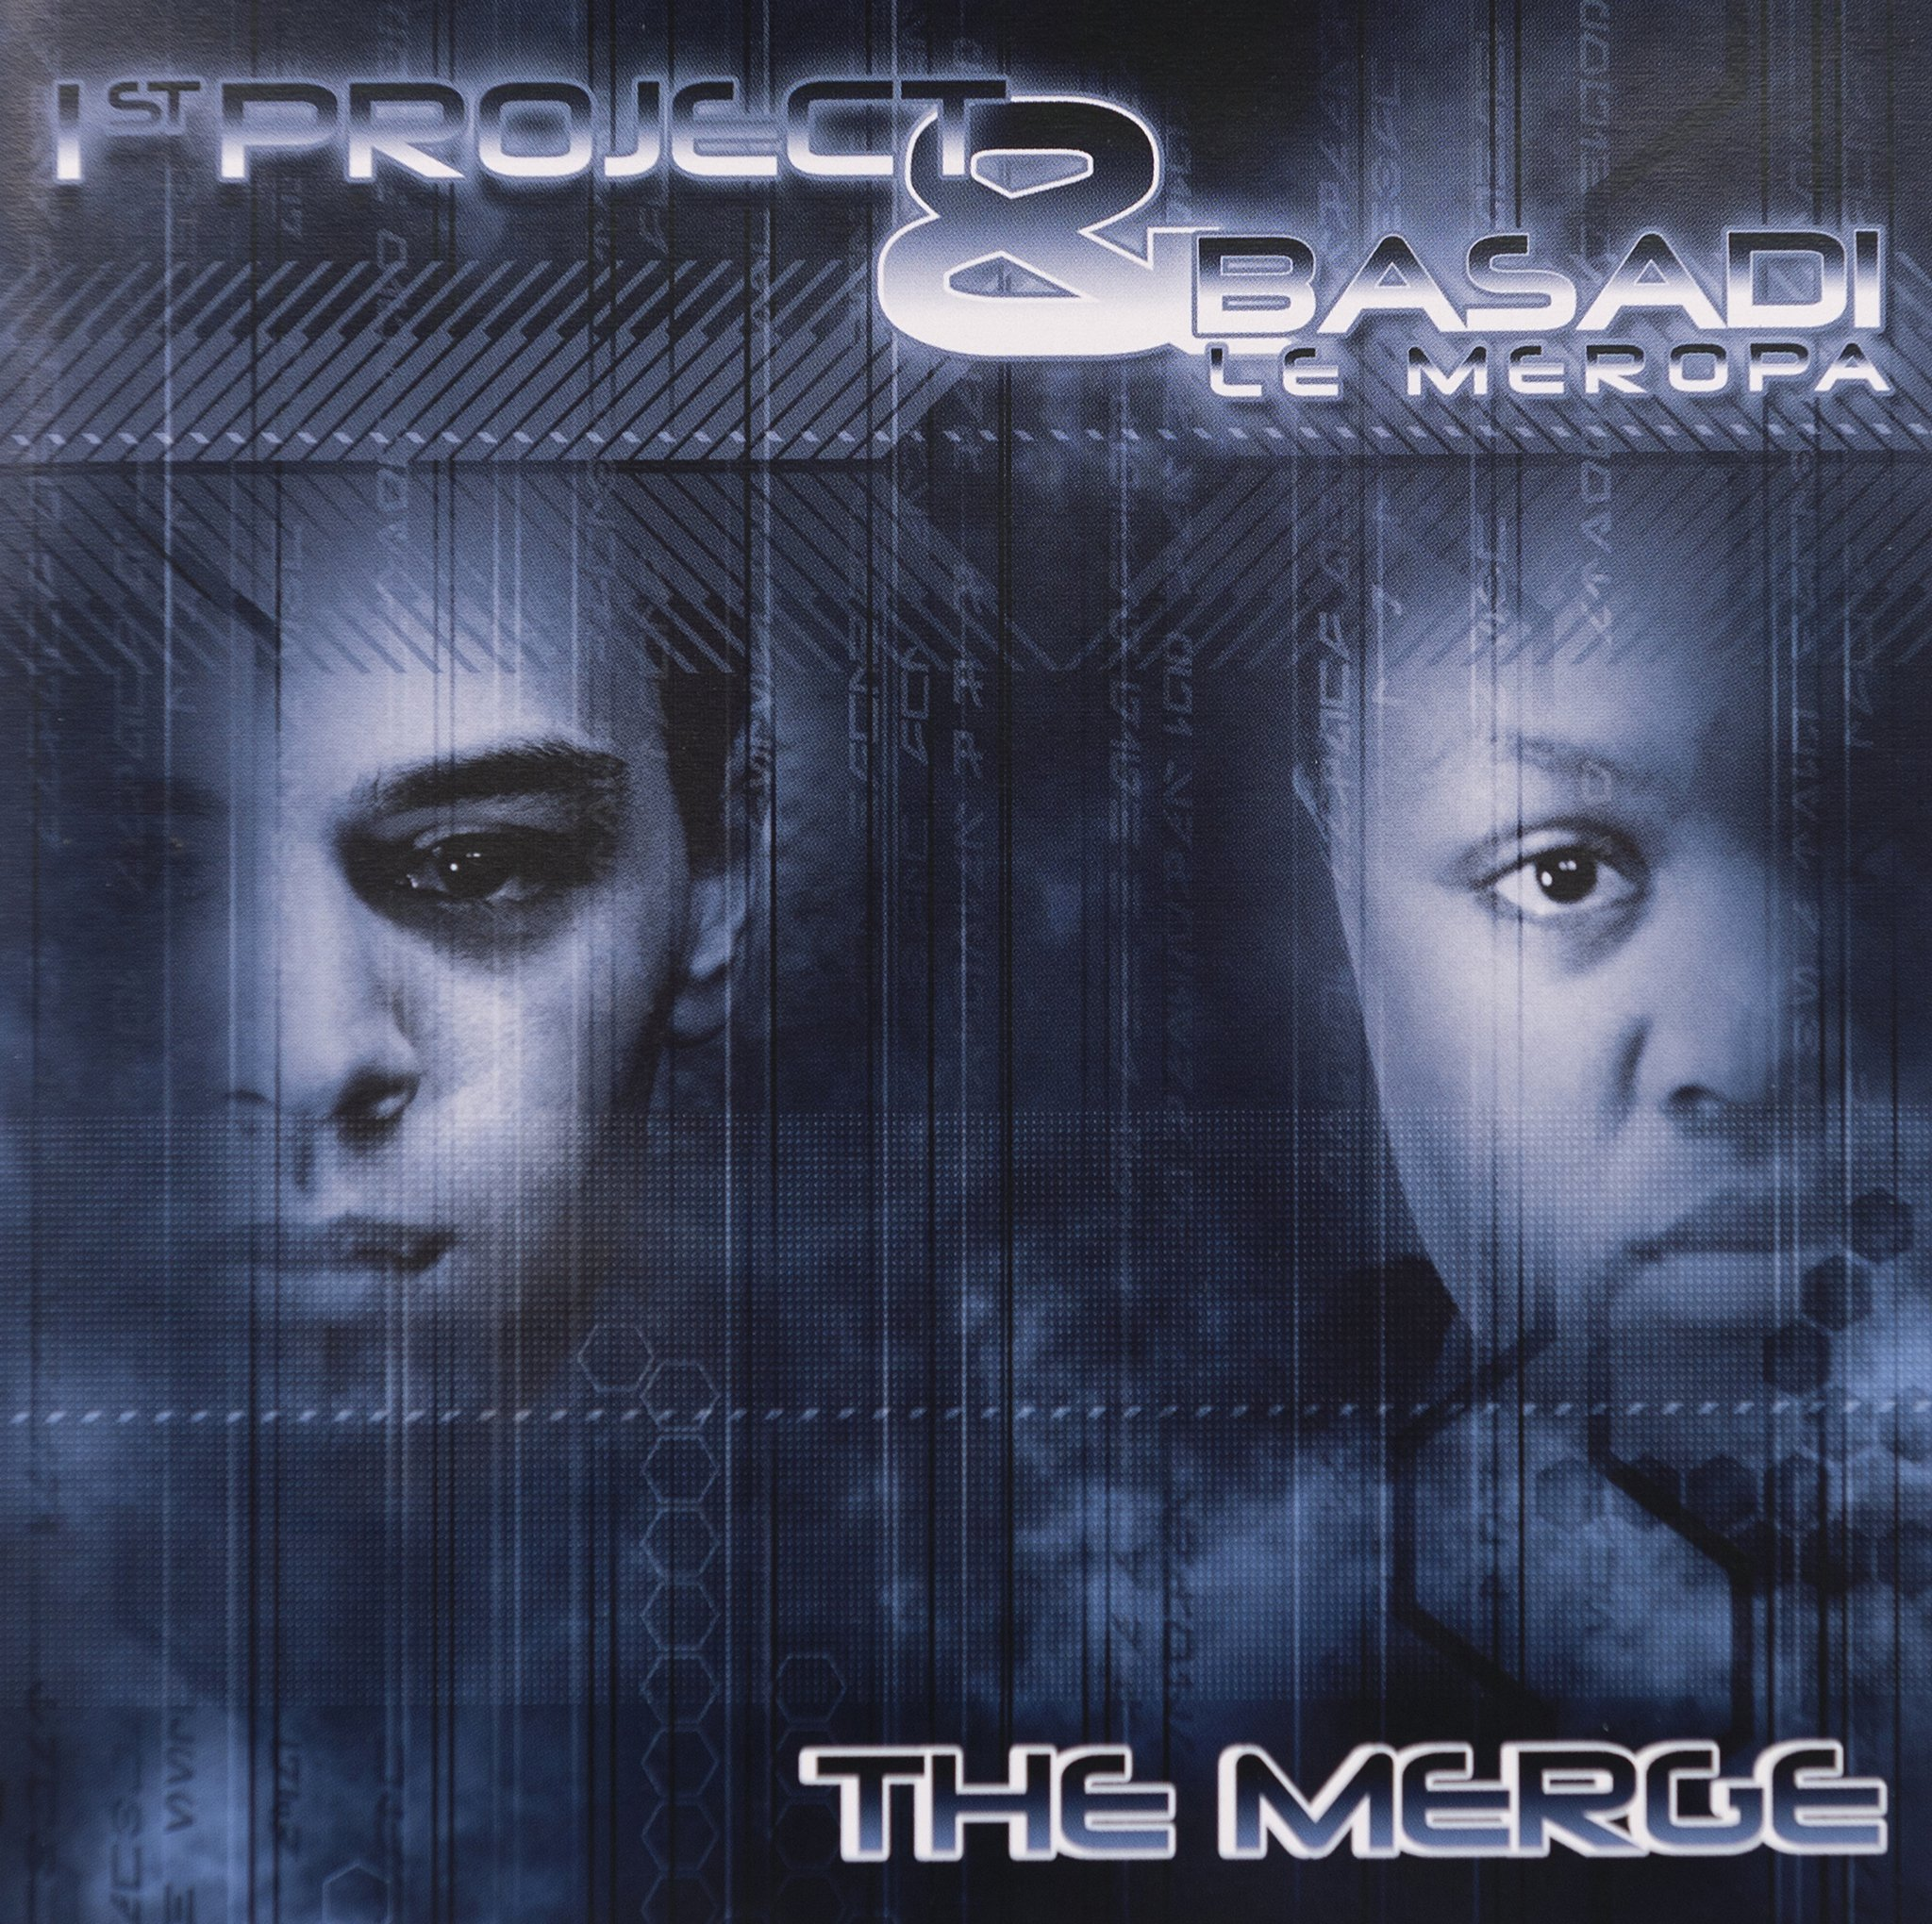 The Merge - 1st Project & Basadi Le Meropa - CD